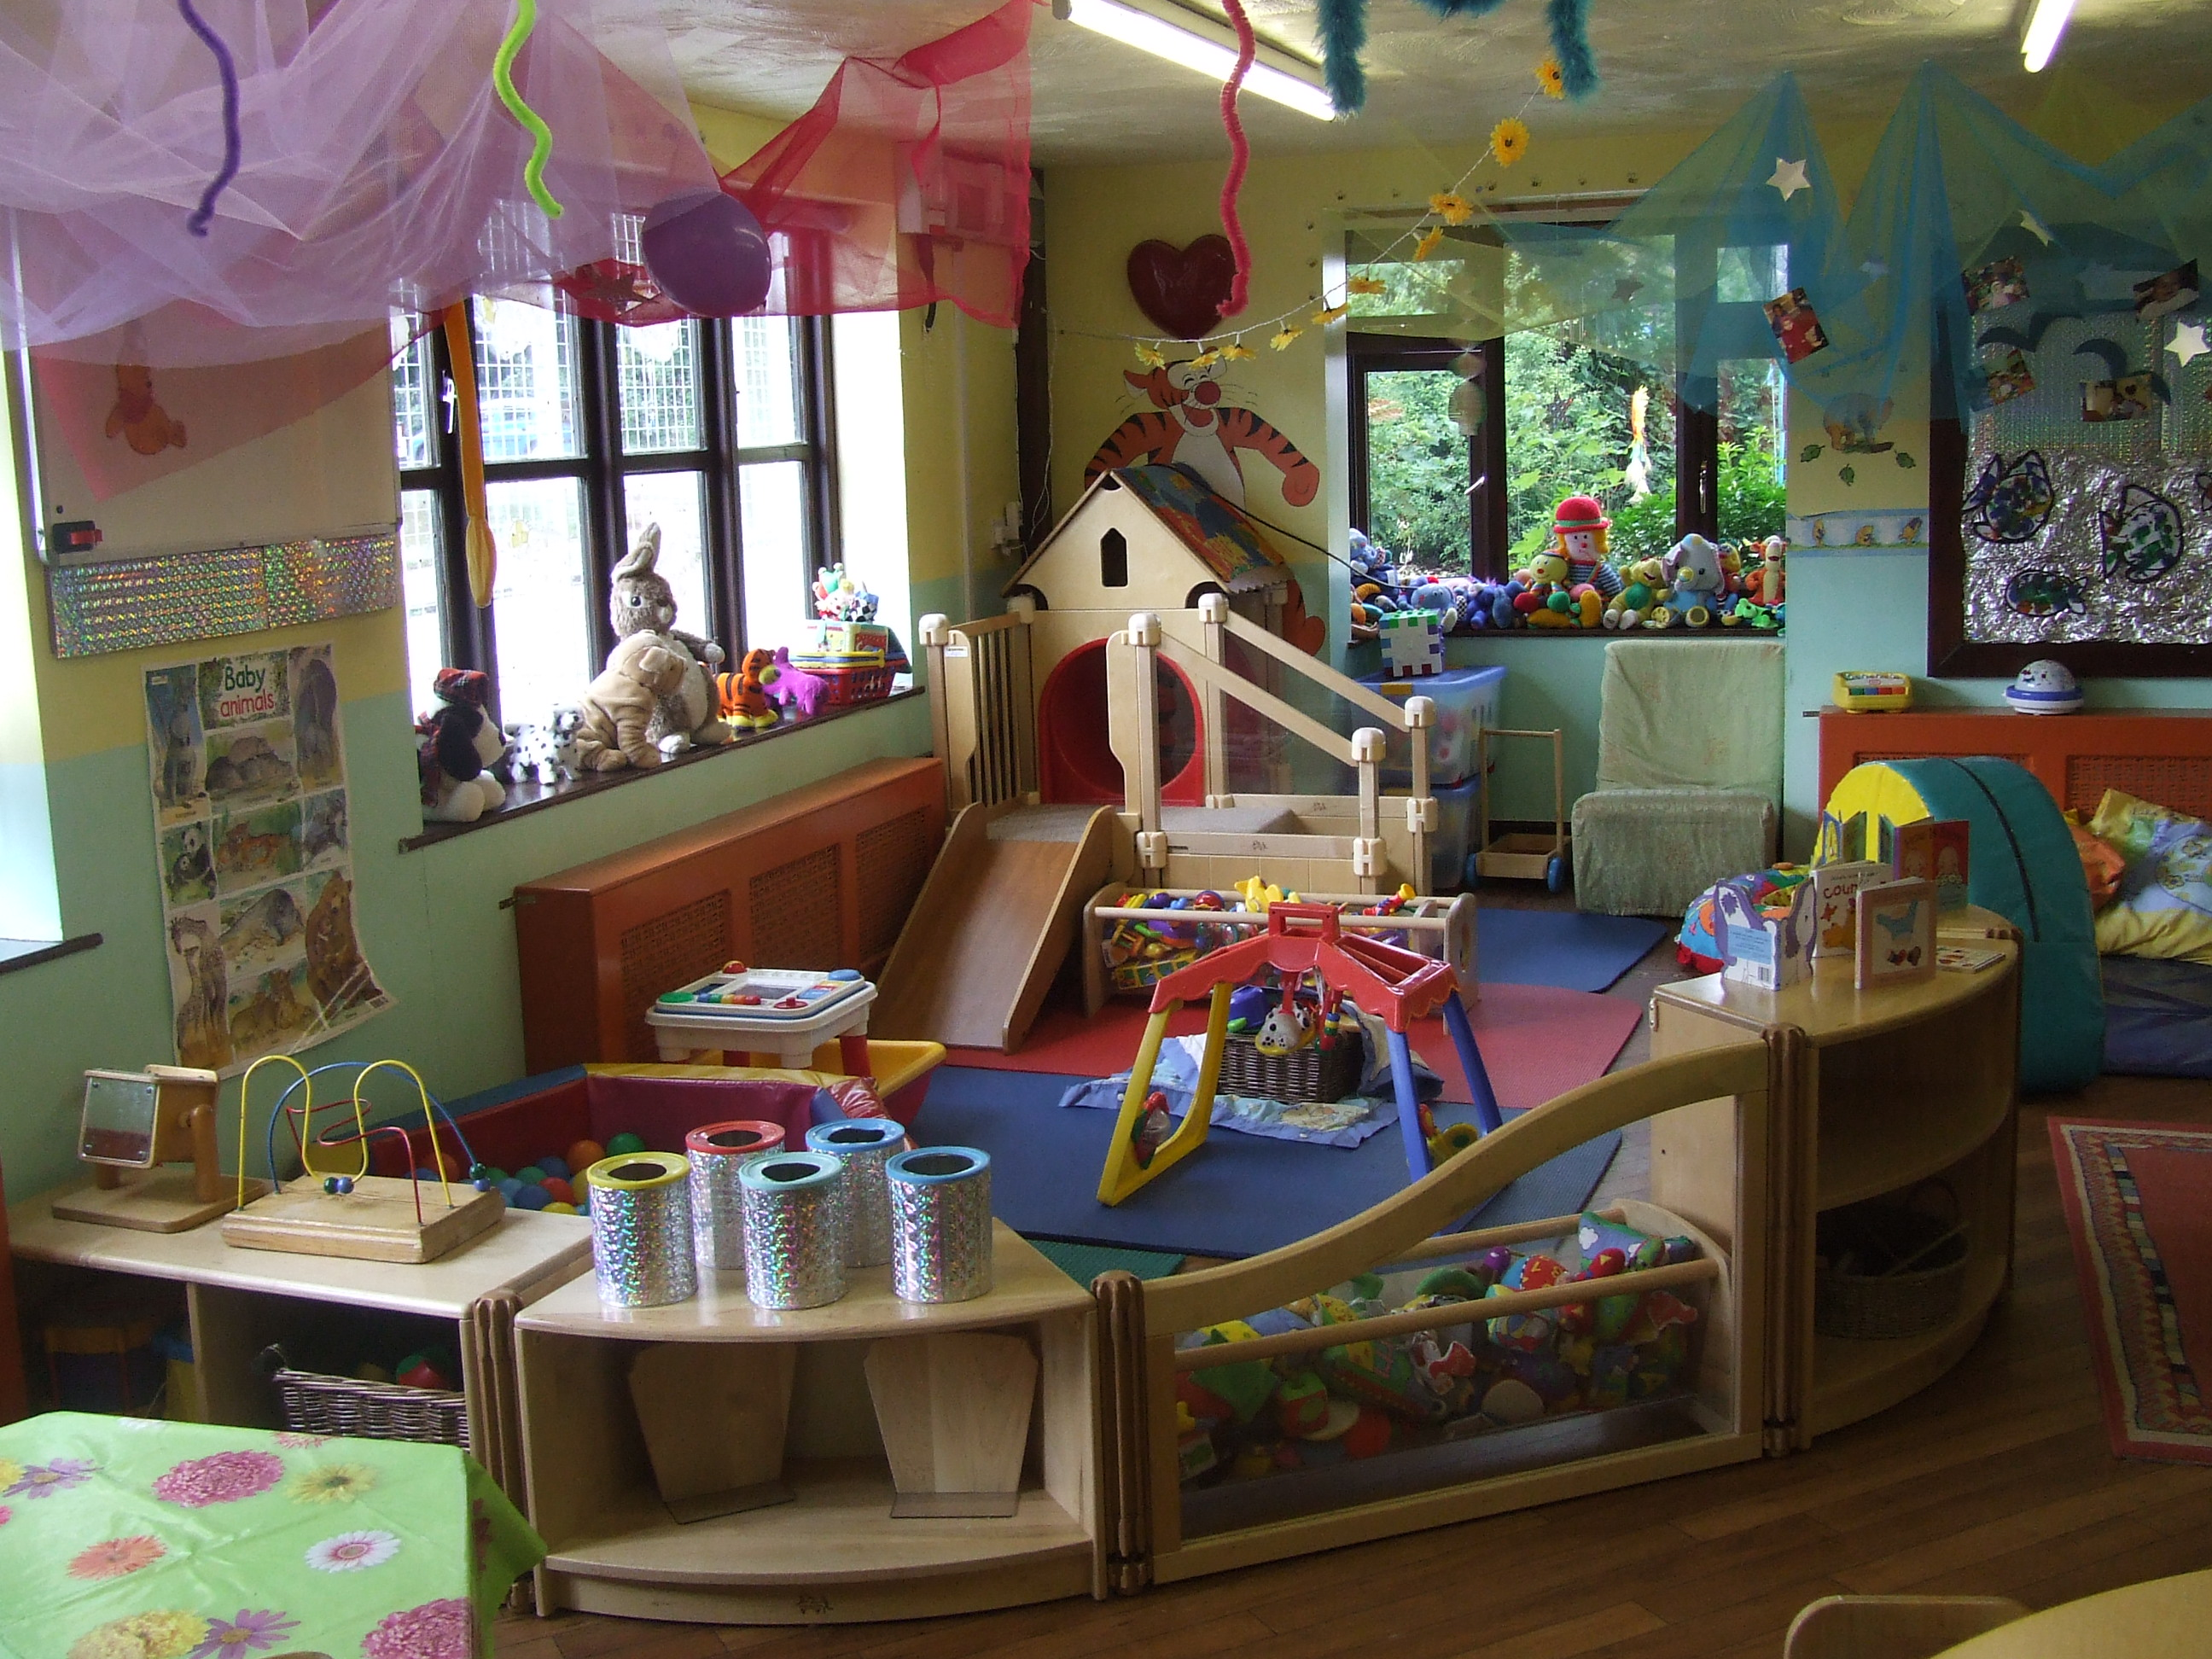 Little Poppets Nursery First Opened It S Doors In 1989 Since Then We Have Built Up And Maintained An Excellent Retion As A Local School